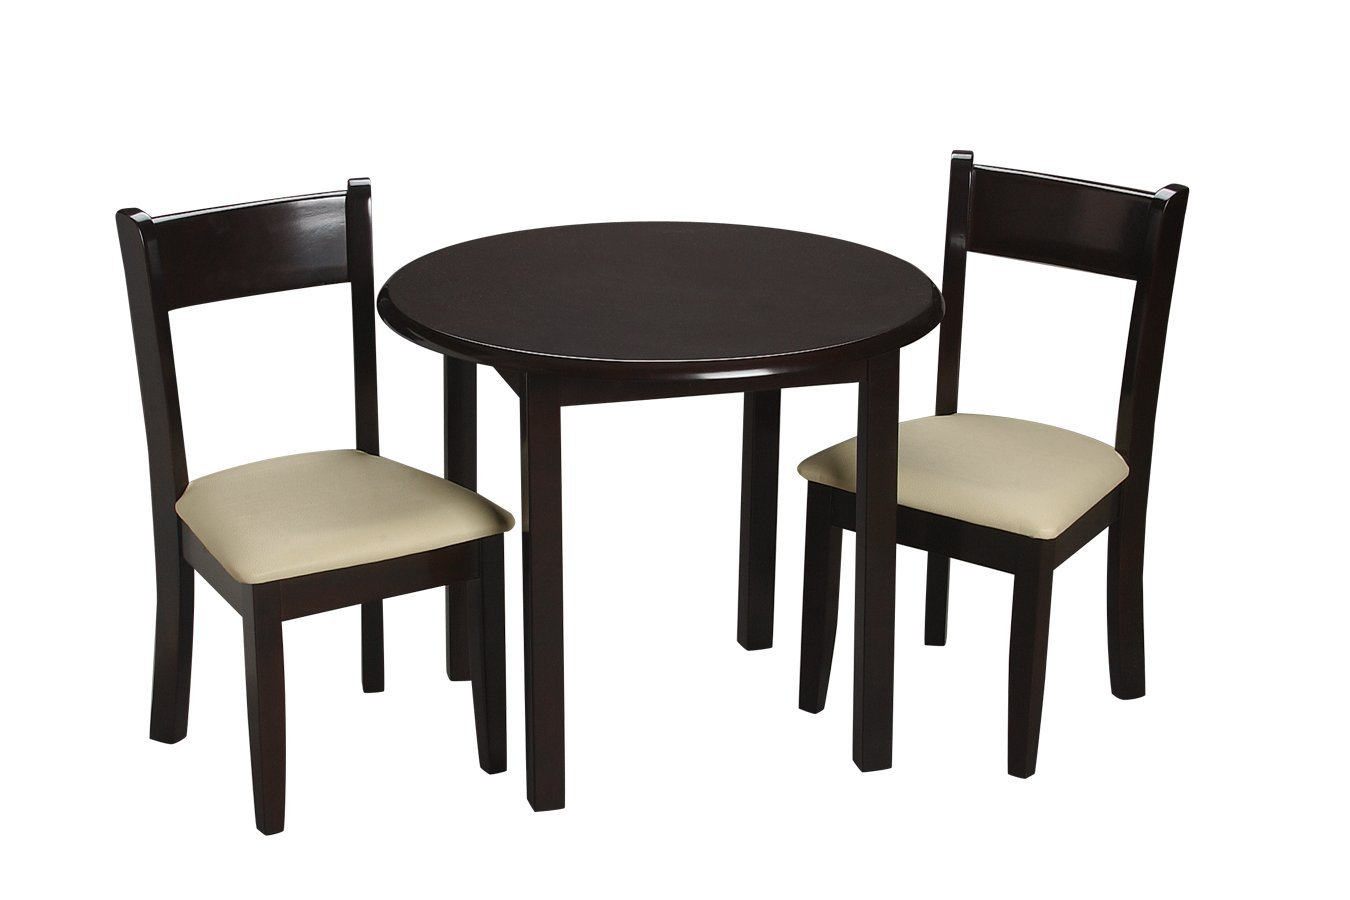 Gift Mark Children's Round Table with 2 Matching Upholstered Chairs, Espresso